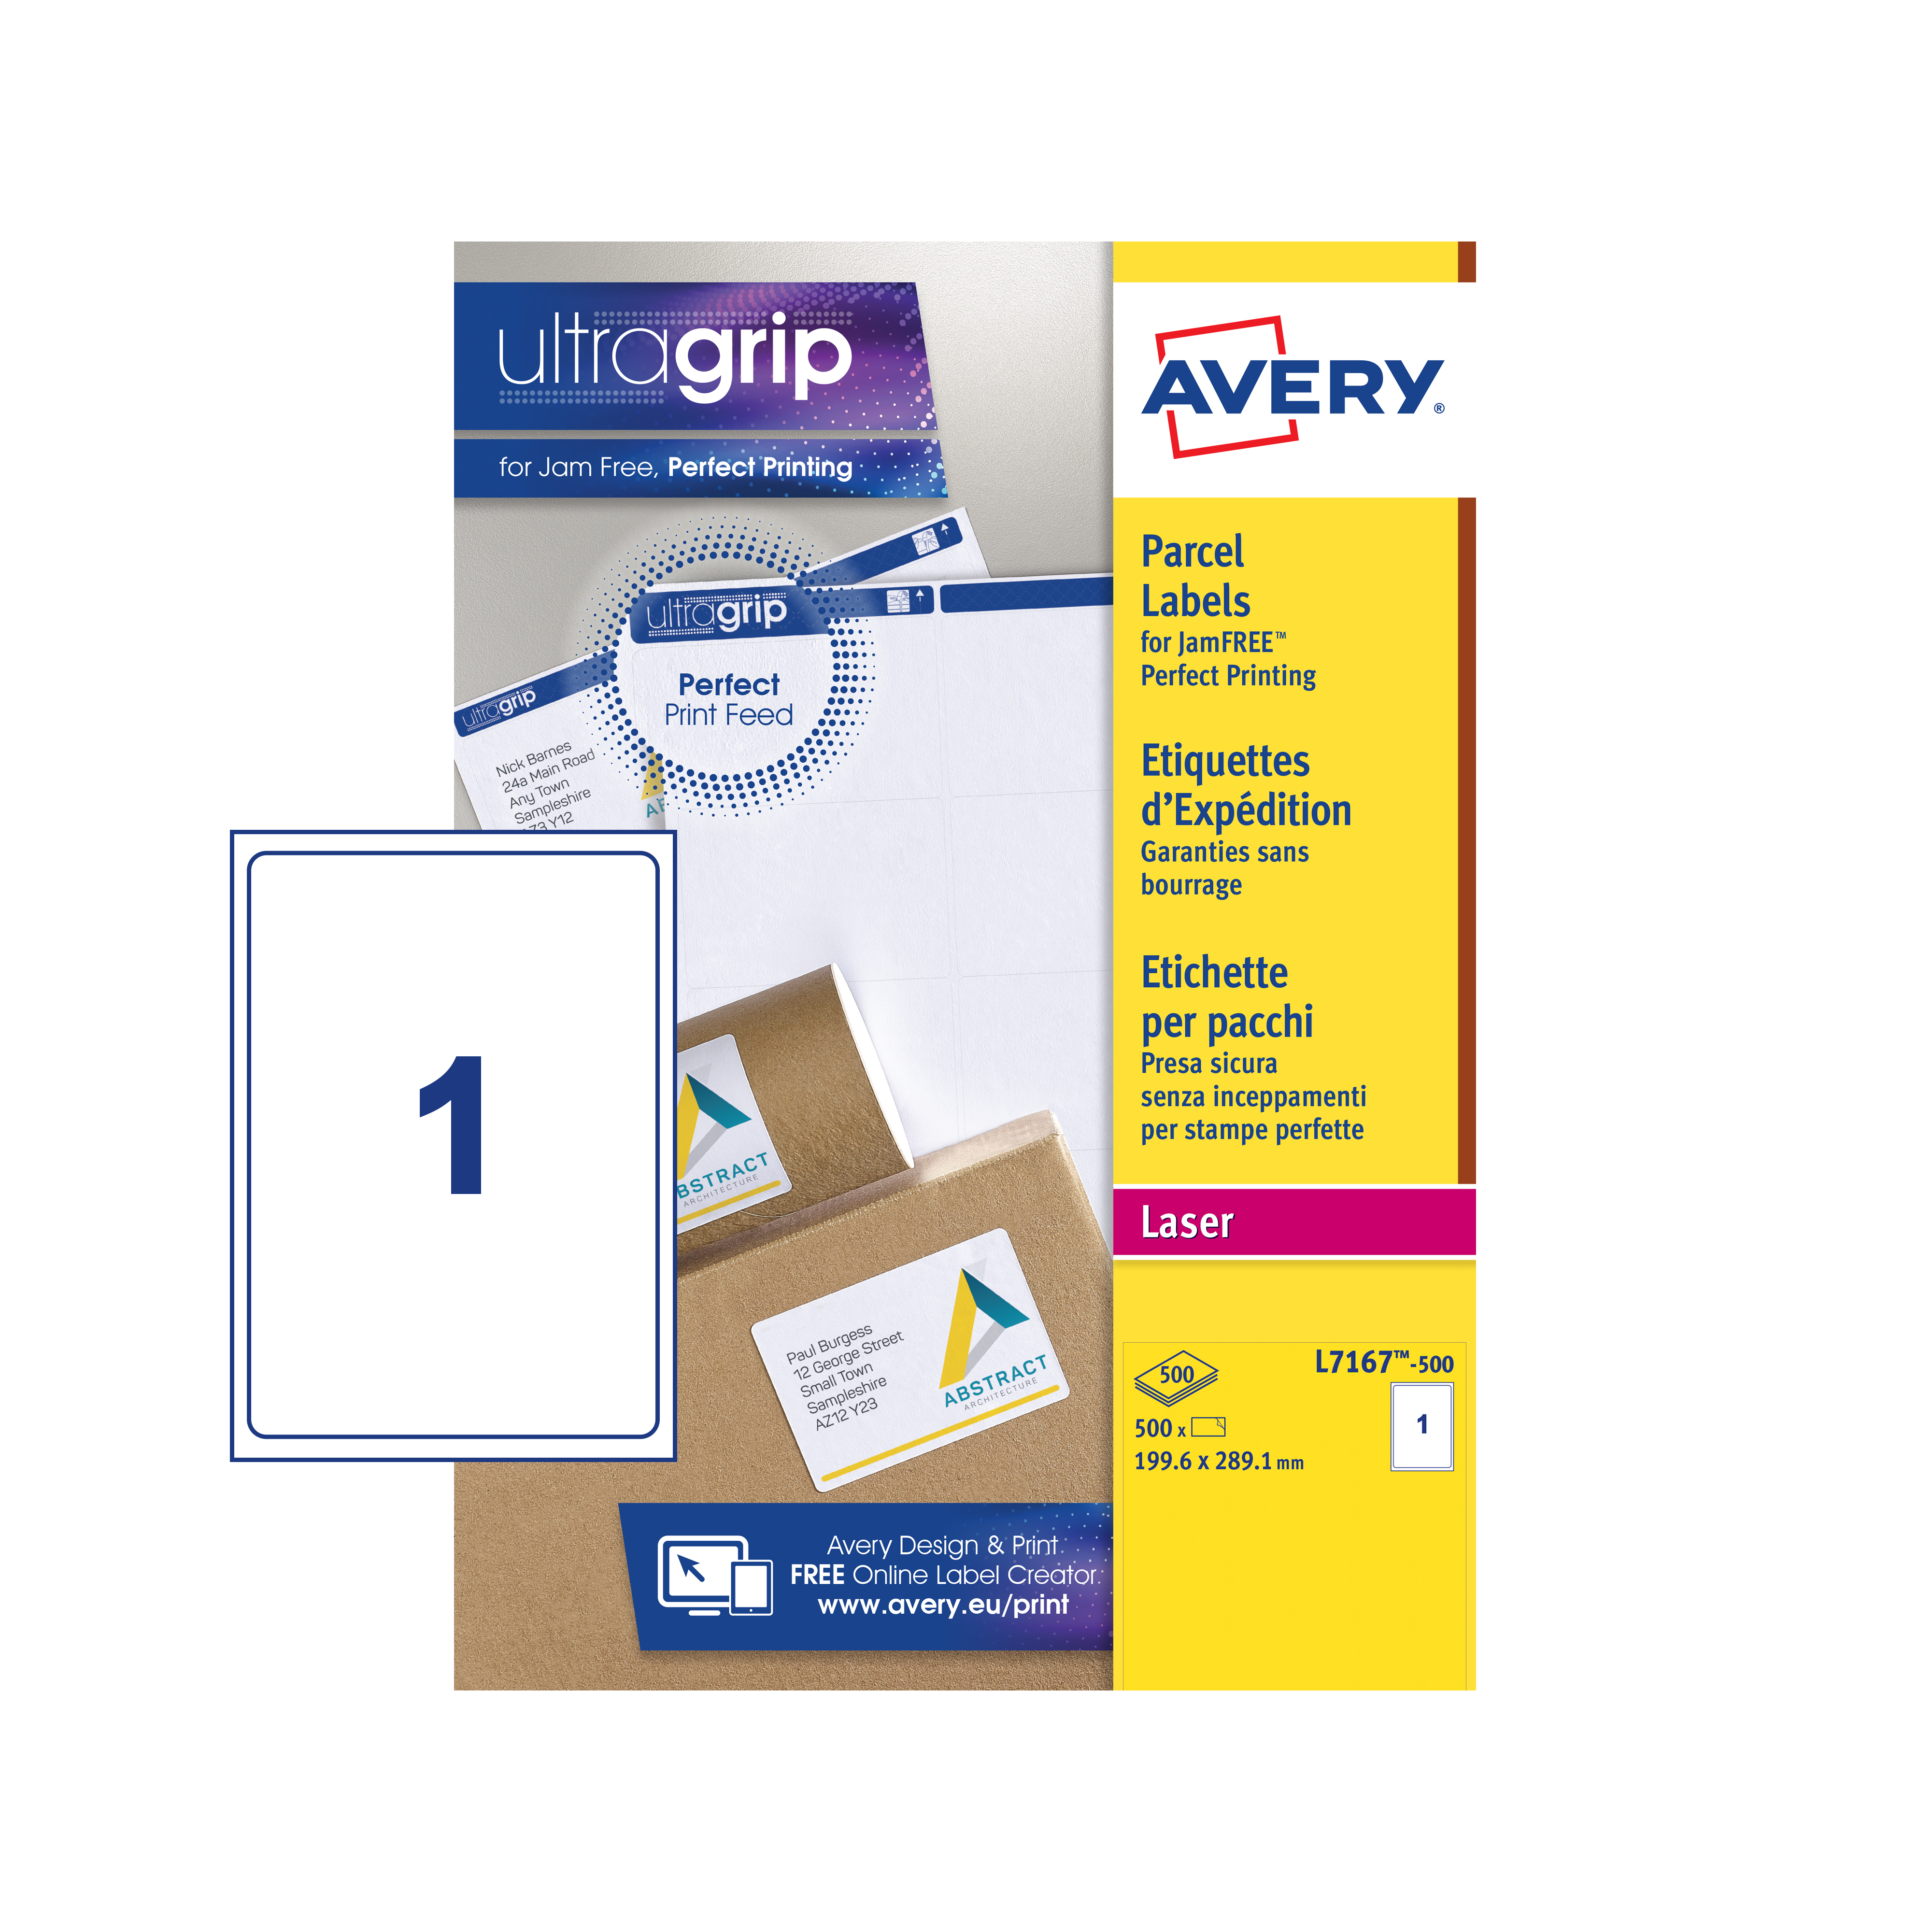 Avery parcel labels laser jam-free 2 per sheet 199. 6x143. 5mm.